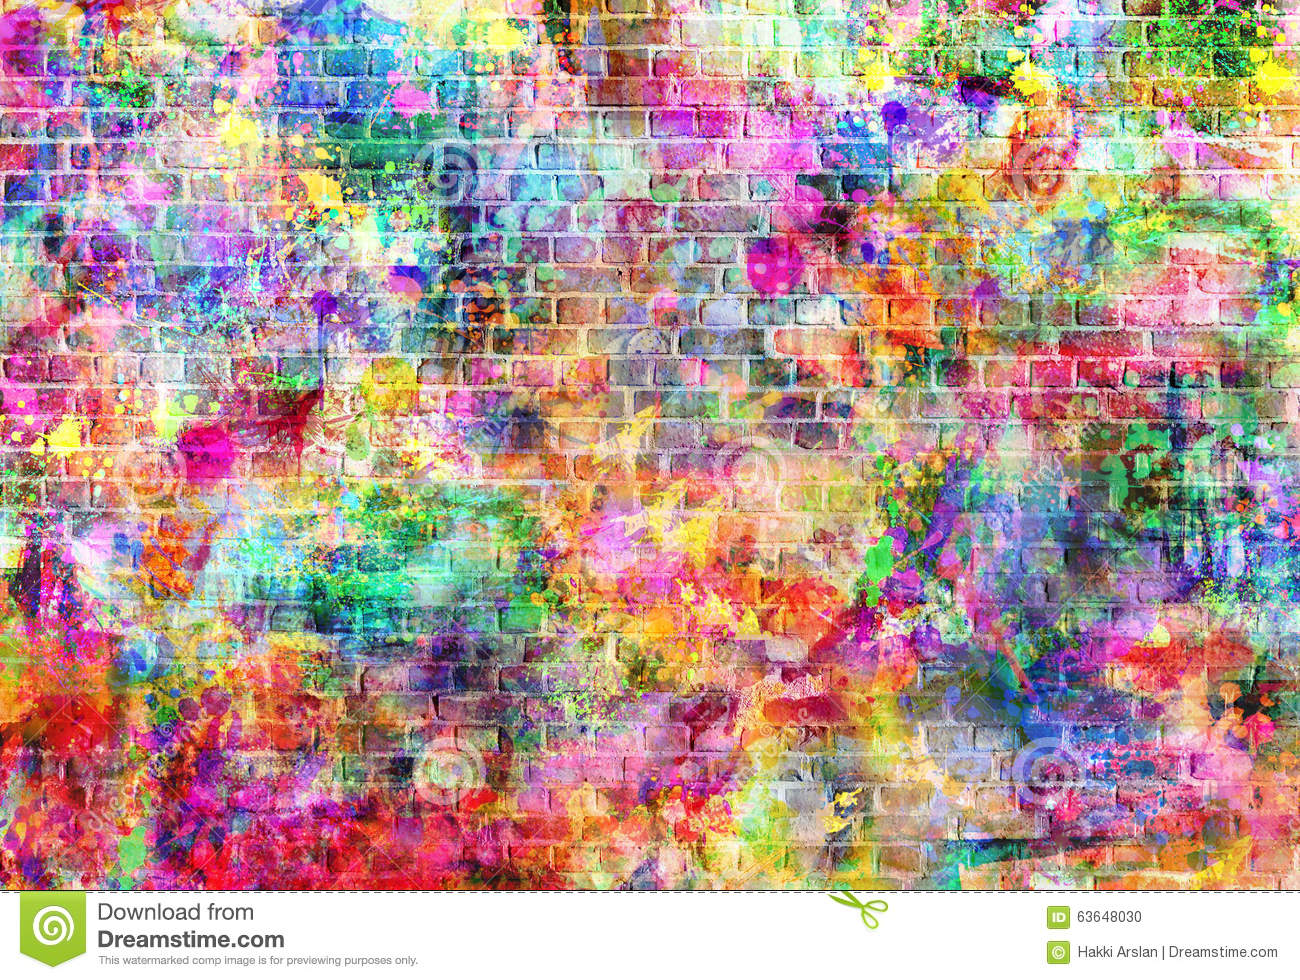 Colorful grunge art wall illustration urban art wallpaper Colorful wall decor